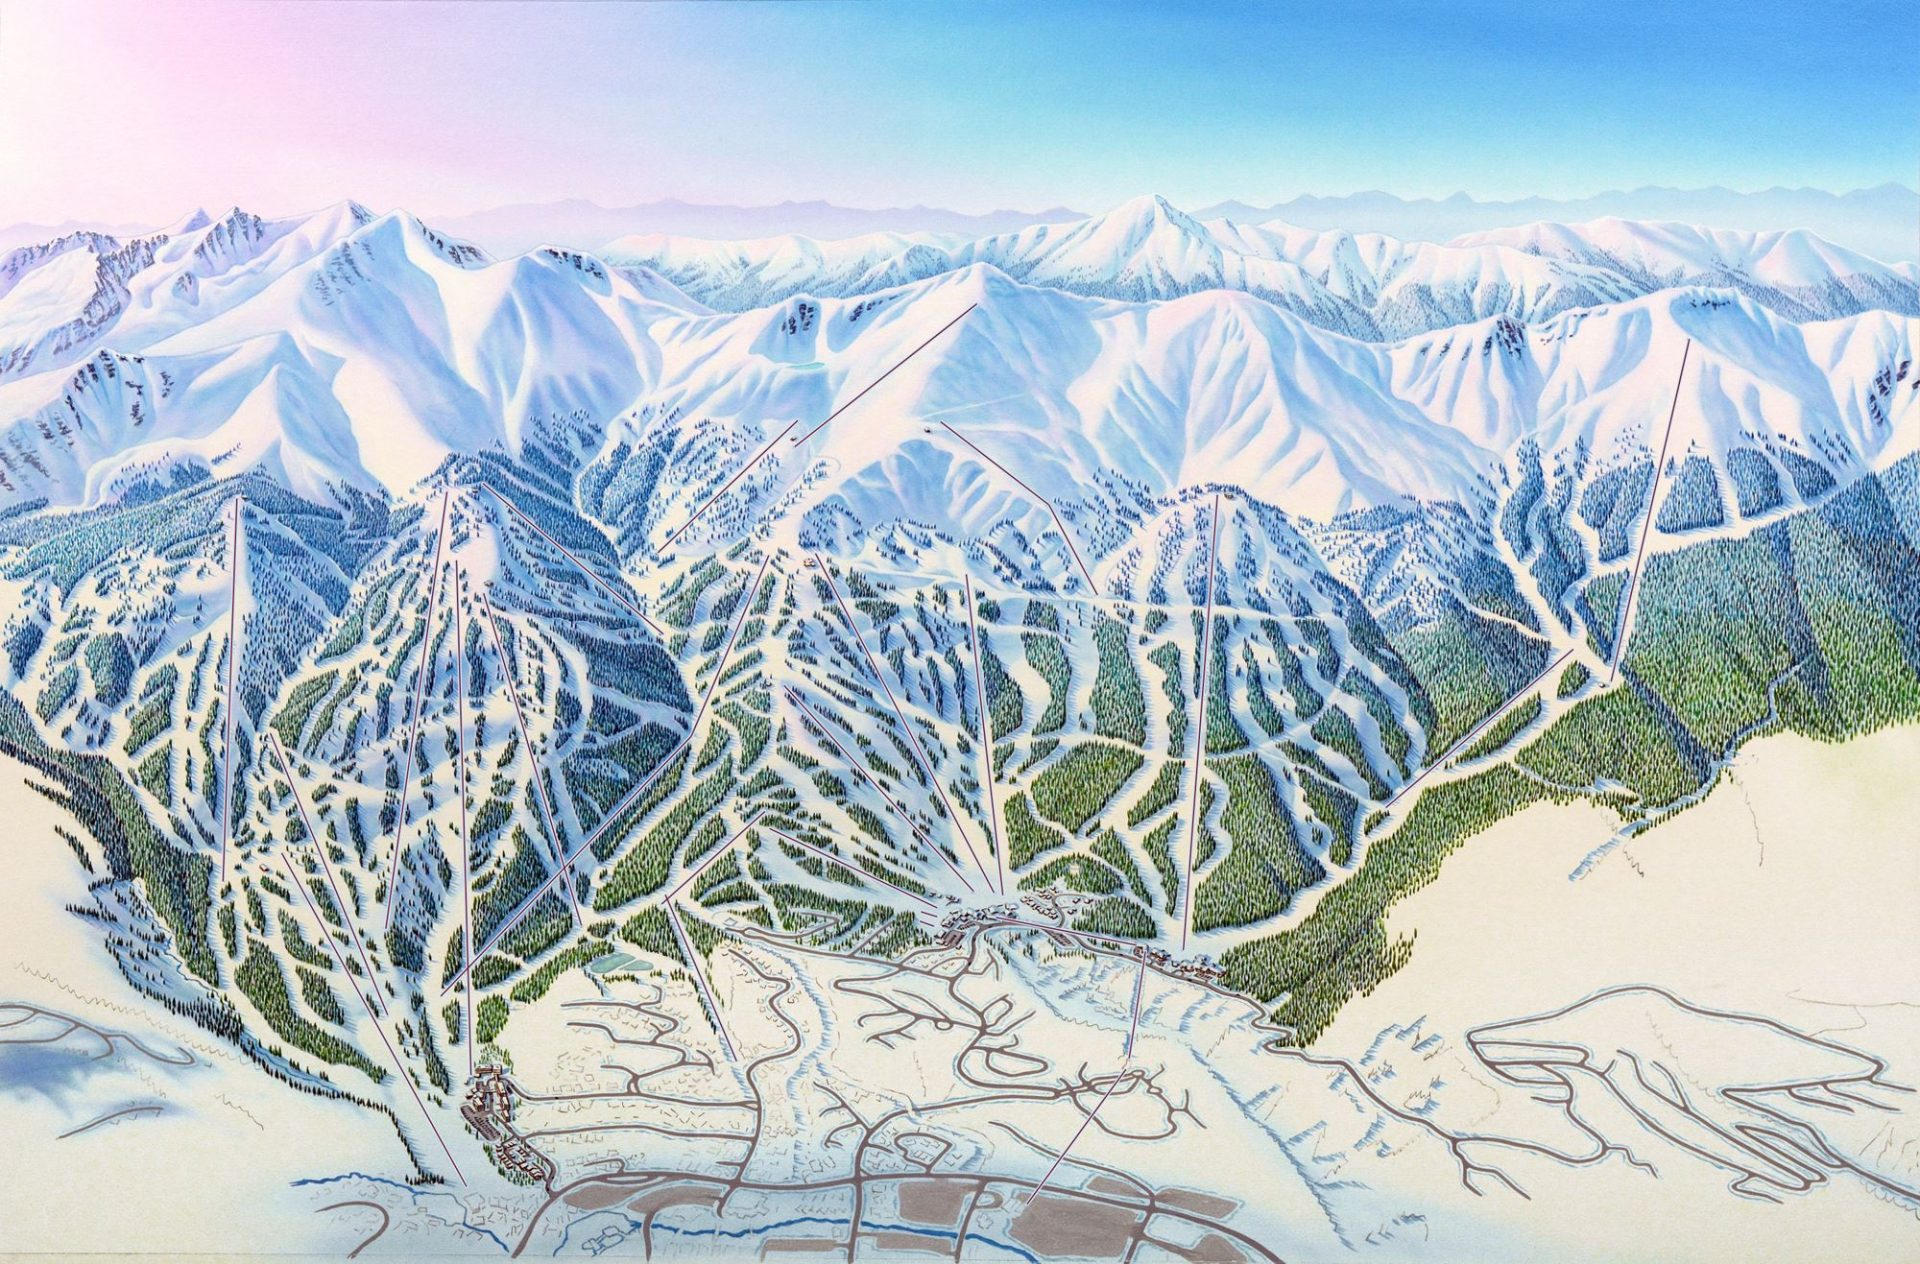 James Niehues: The Man Behind the Map 6